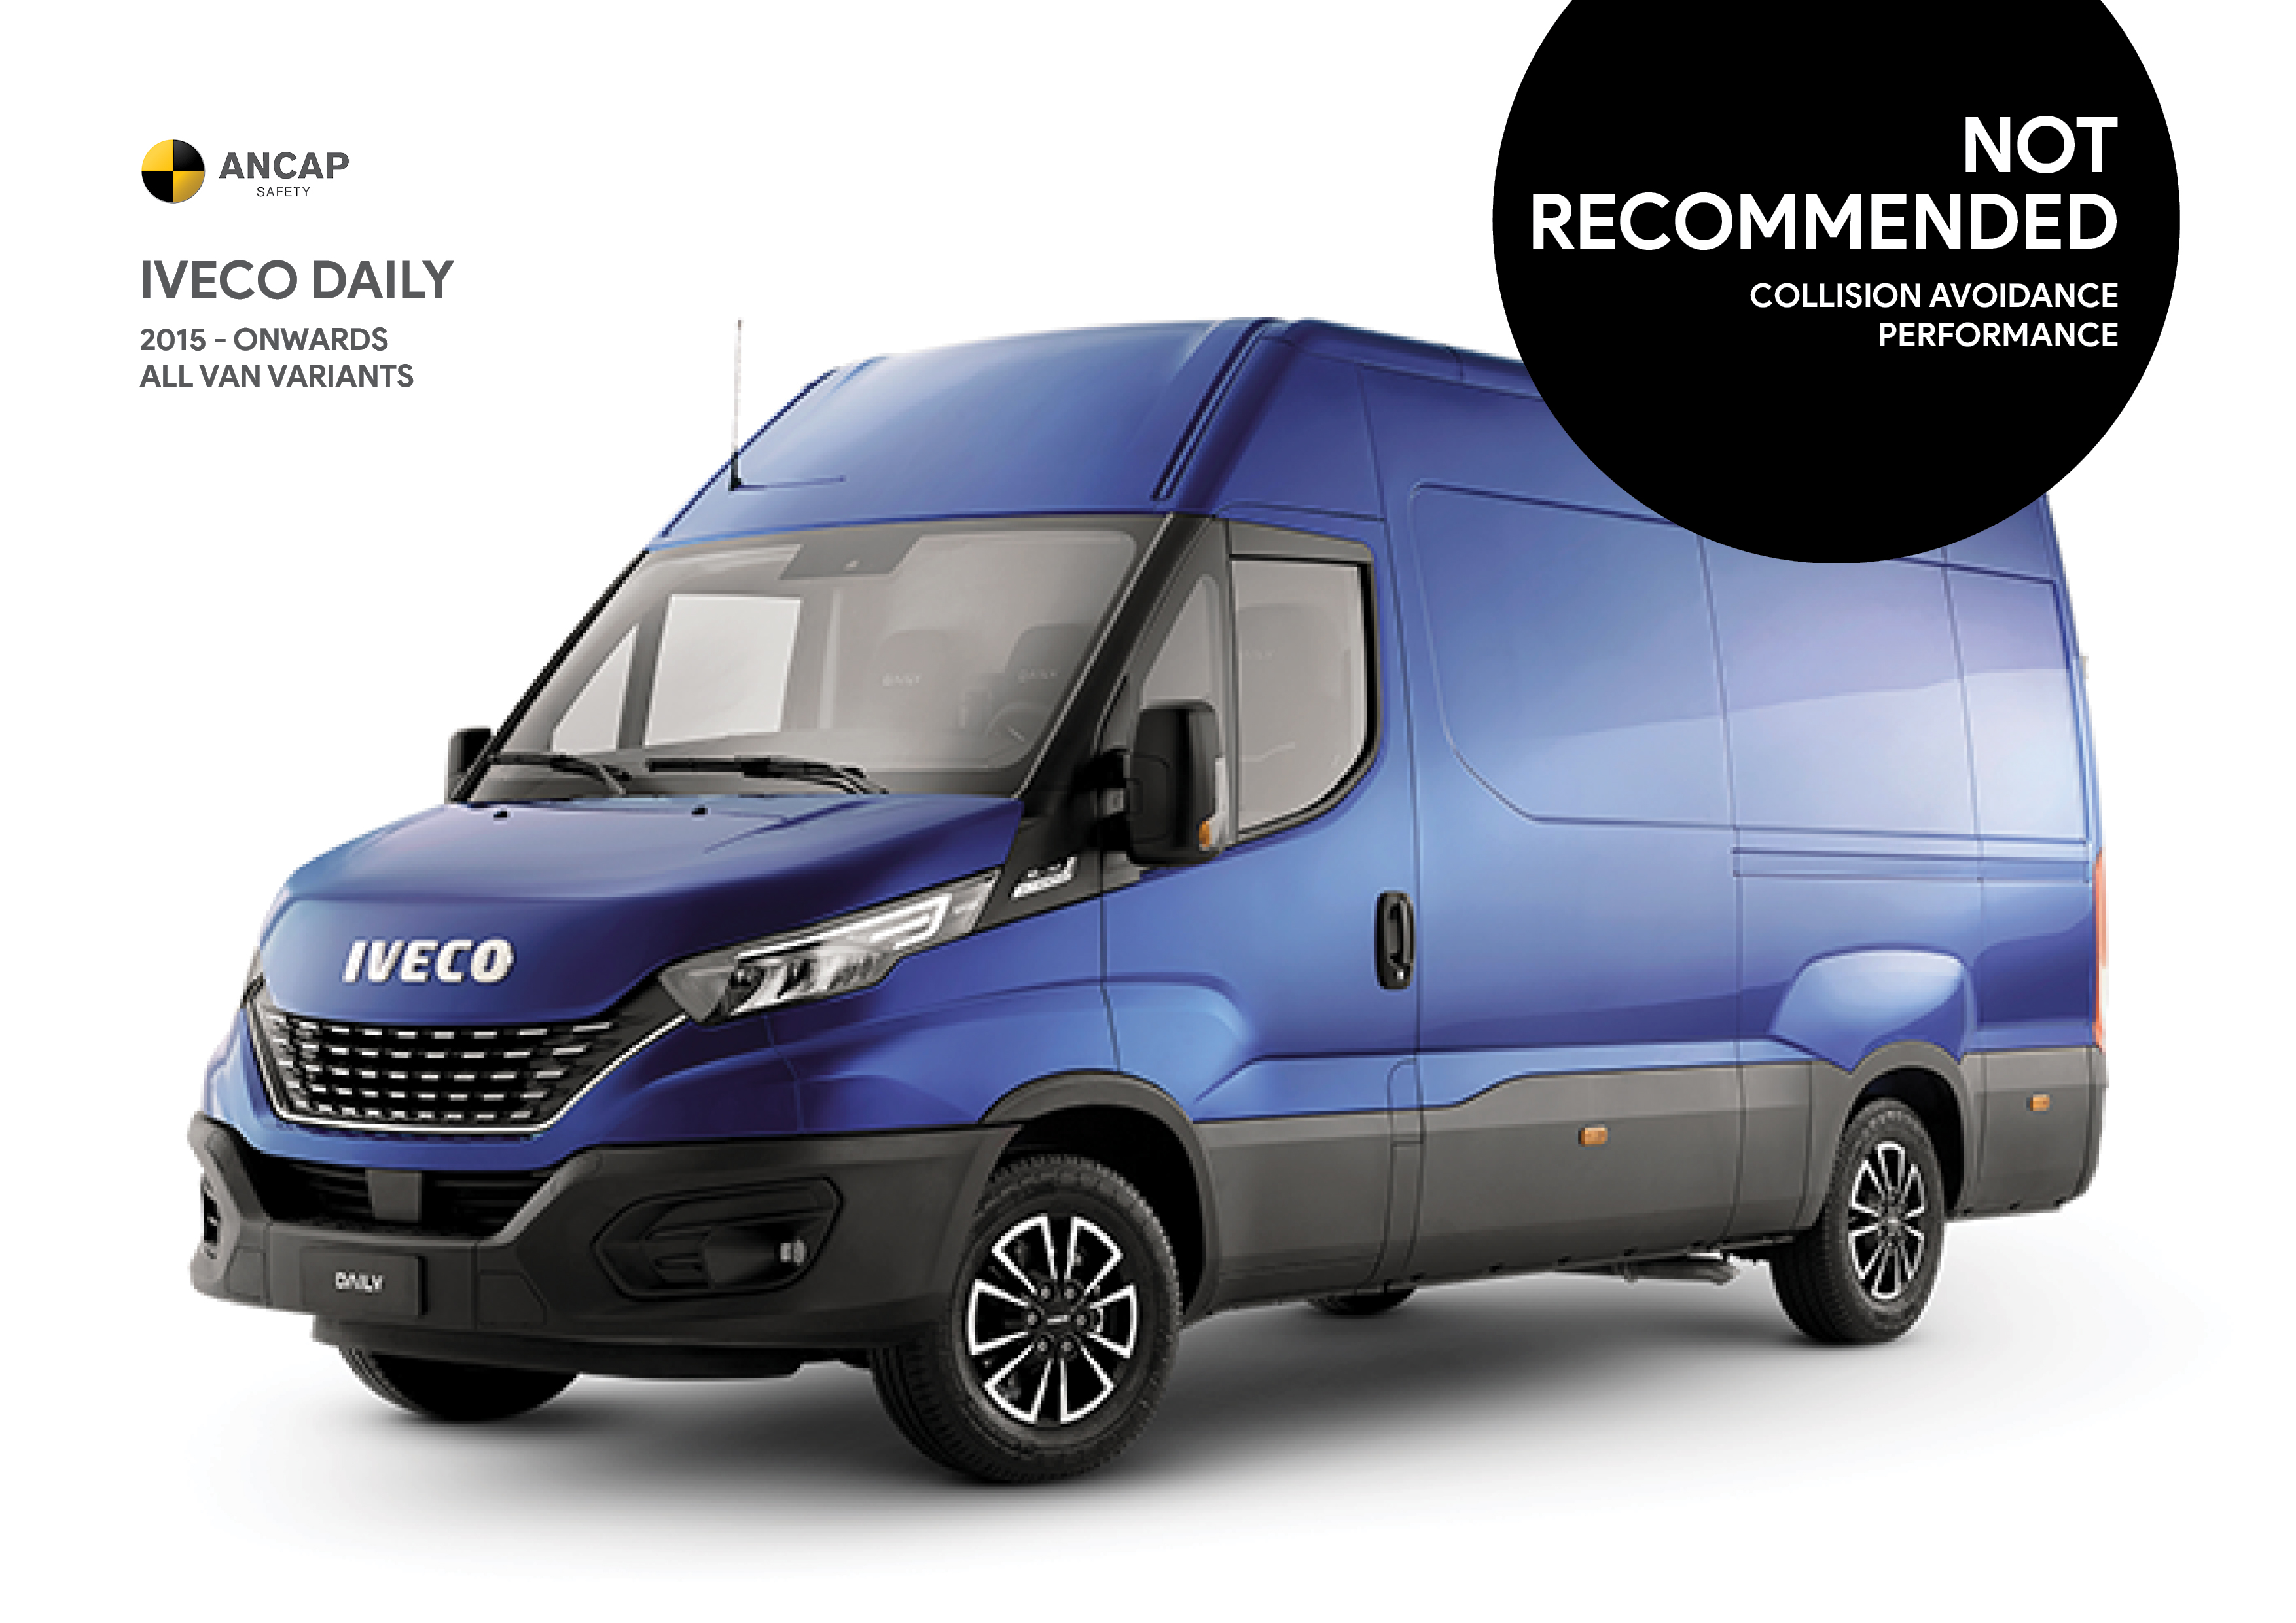 Australasia's independent voice on vehicle safety, ANCAP SAFETY, has broadened its field of view to review the active safety performance of a range of commercial vans – a segment not previously put under the microscope.